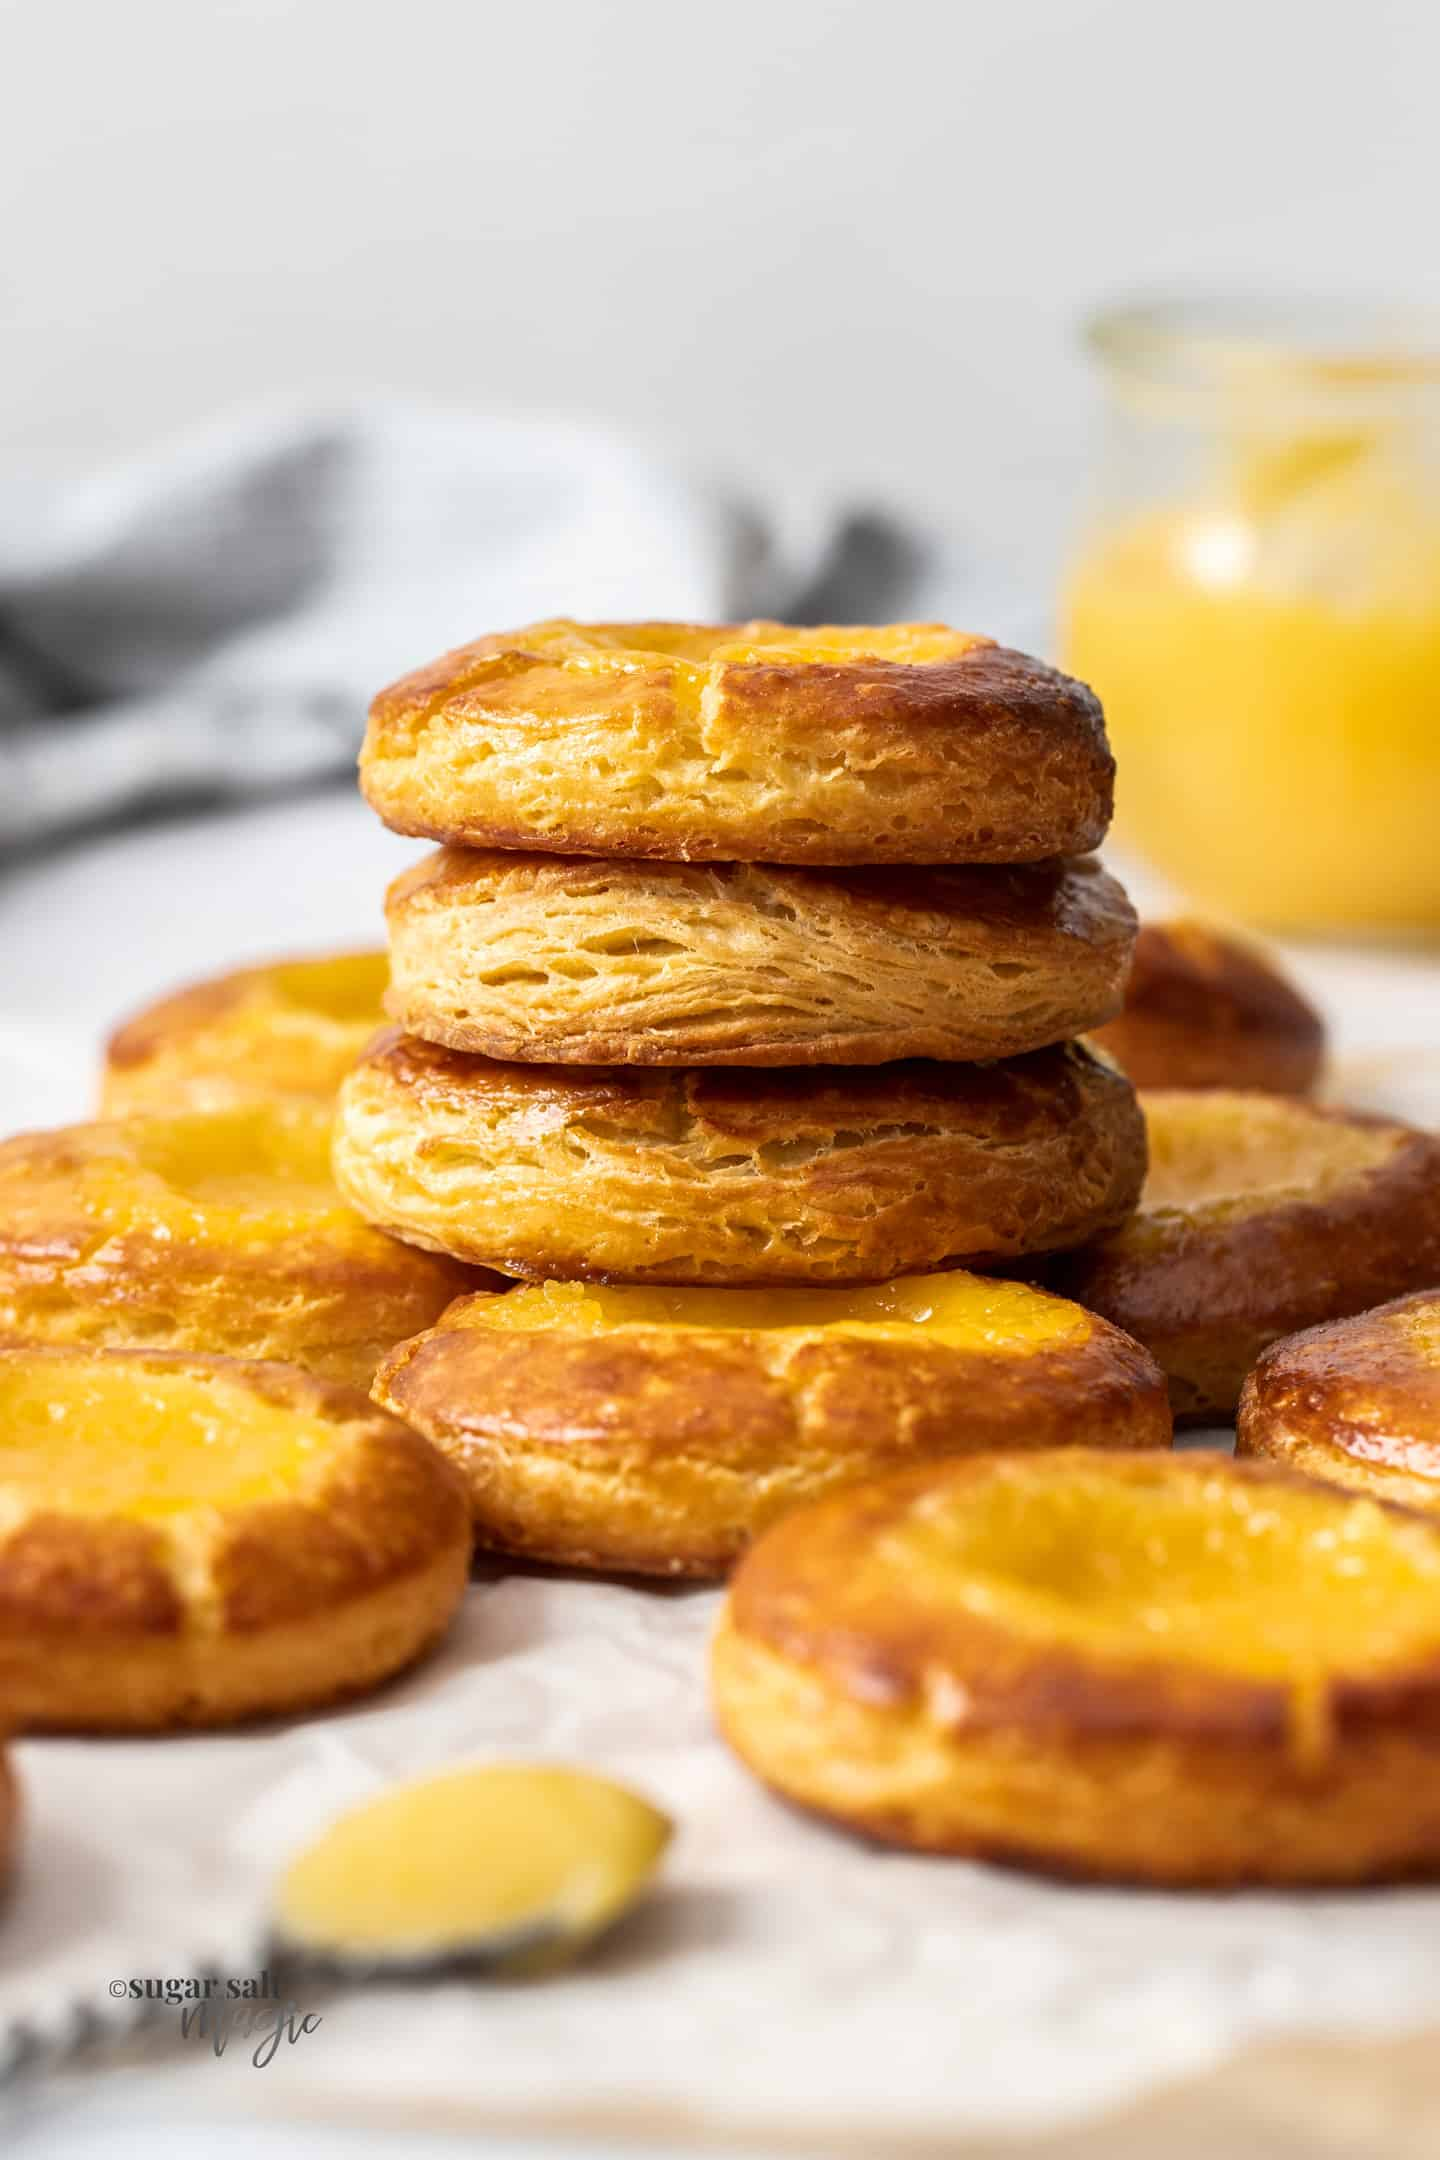 A stack of danish pastries filled with lemon curd.